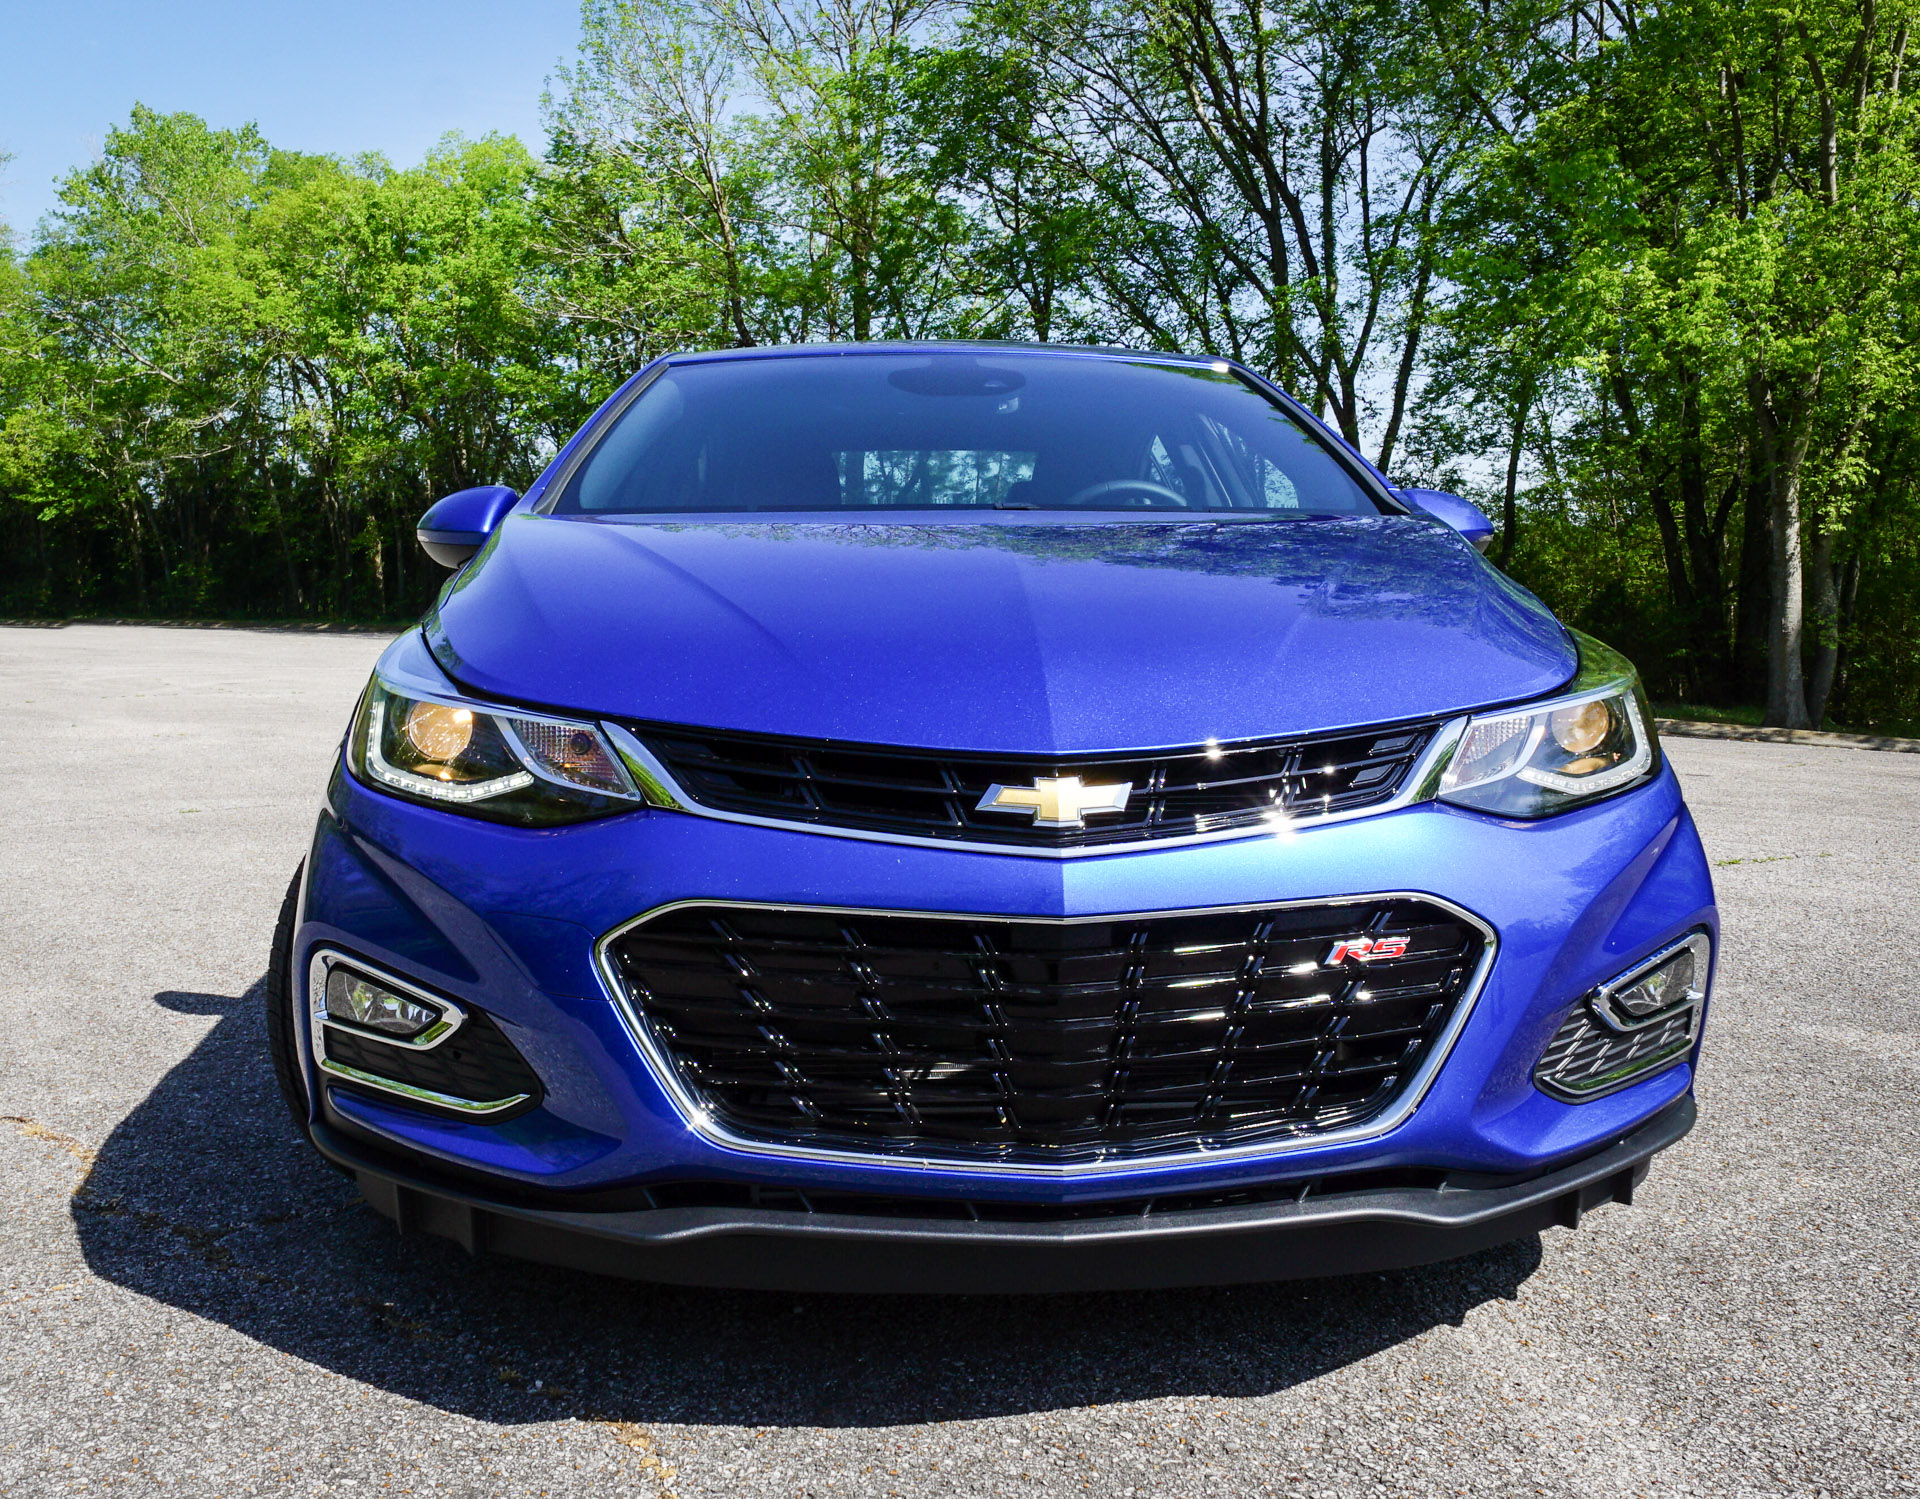 first drive review 2016 chevrolet cruze 95 octane. Black Bedroom Furniture Sets. Home Design Ideas